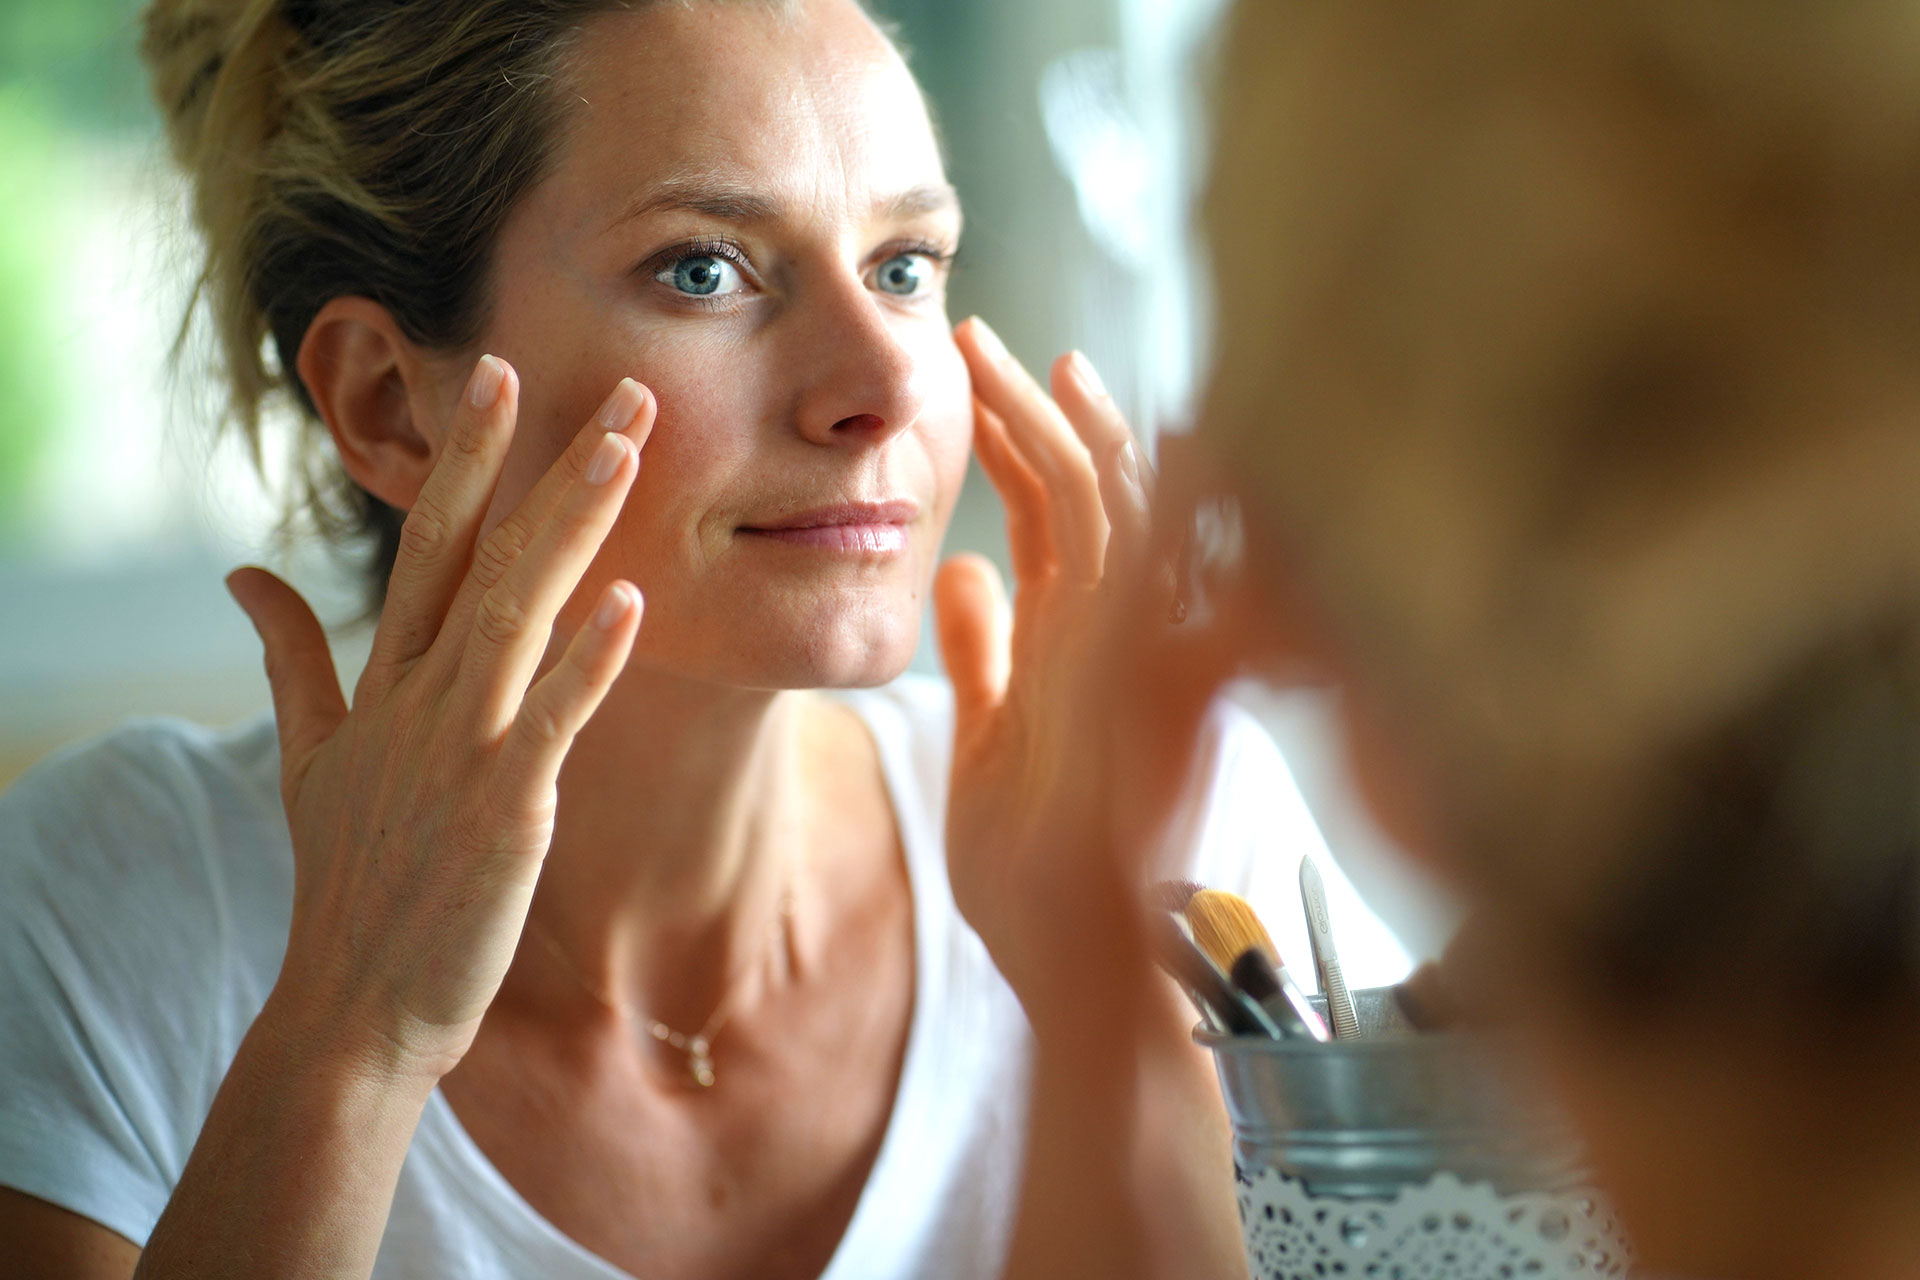 A woman looks in the mirror and carefully applies a skincare product to her cheekbones.